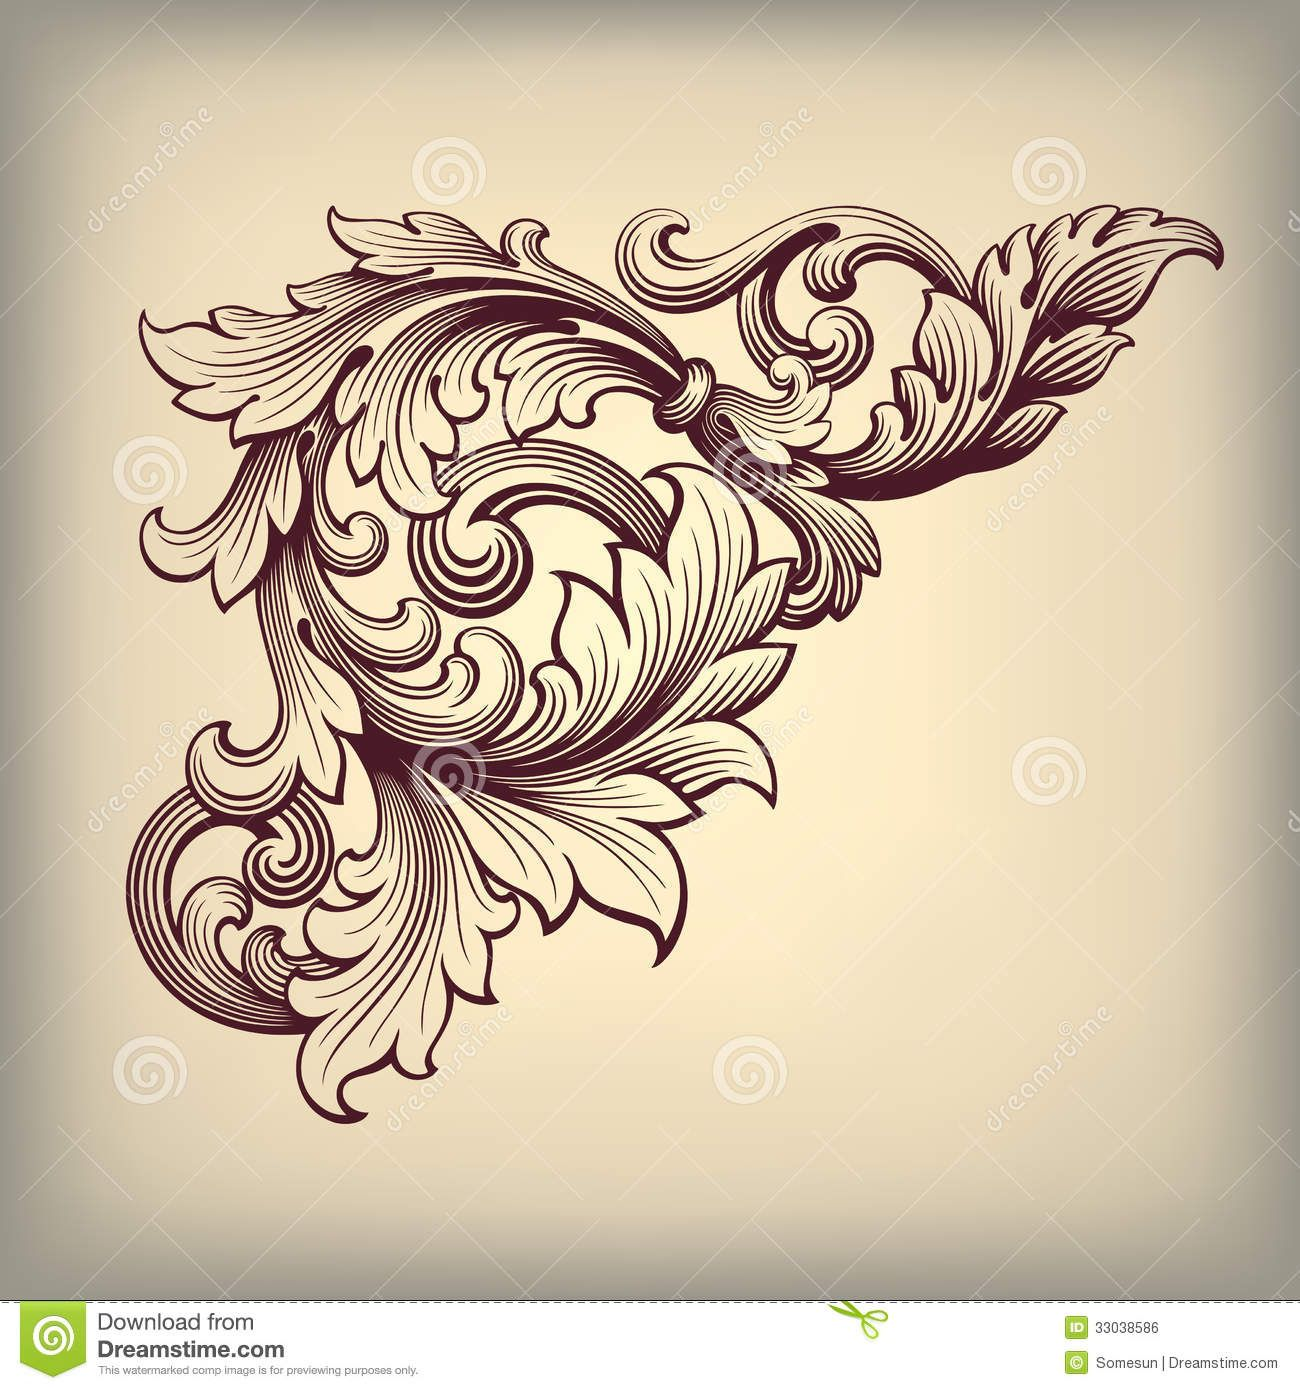 Vintage background ornate baroque pattern vector illustration stock - Vector Vintage Baroque Scroll Design Frame Corner Pattern Element Engraving Retro Style Ornament Stock Vector From The Largest Library Of Royalty Free